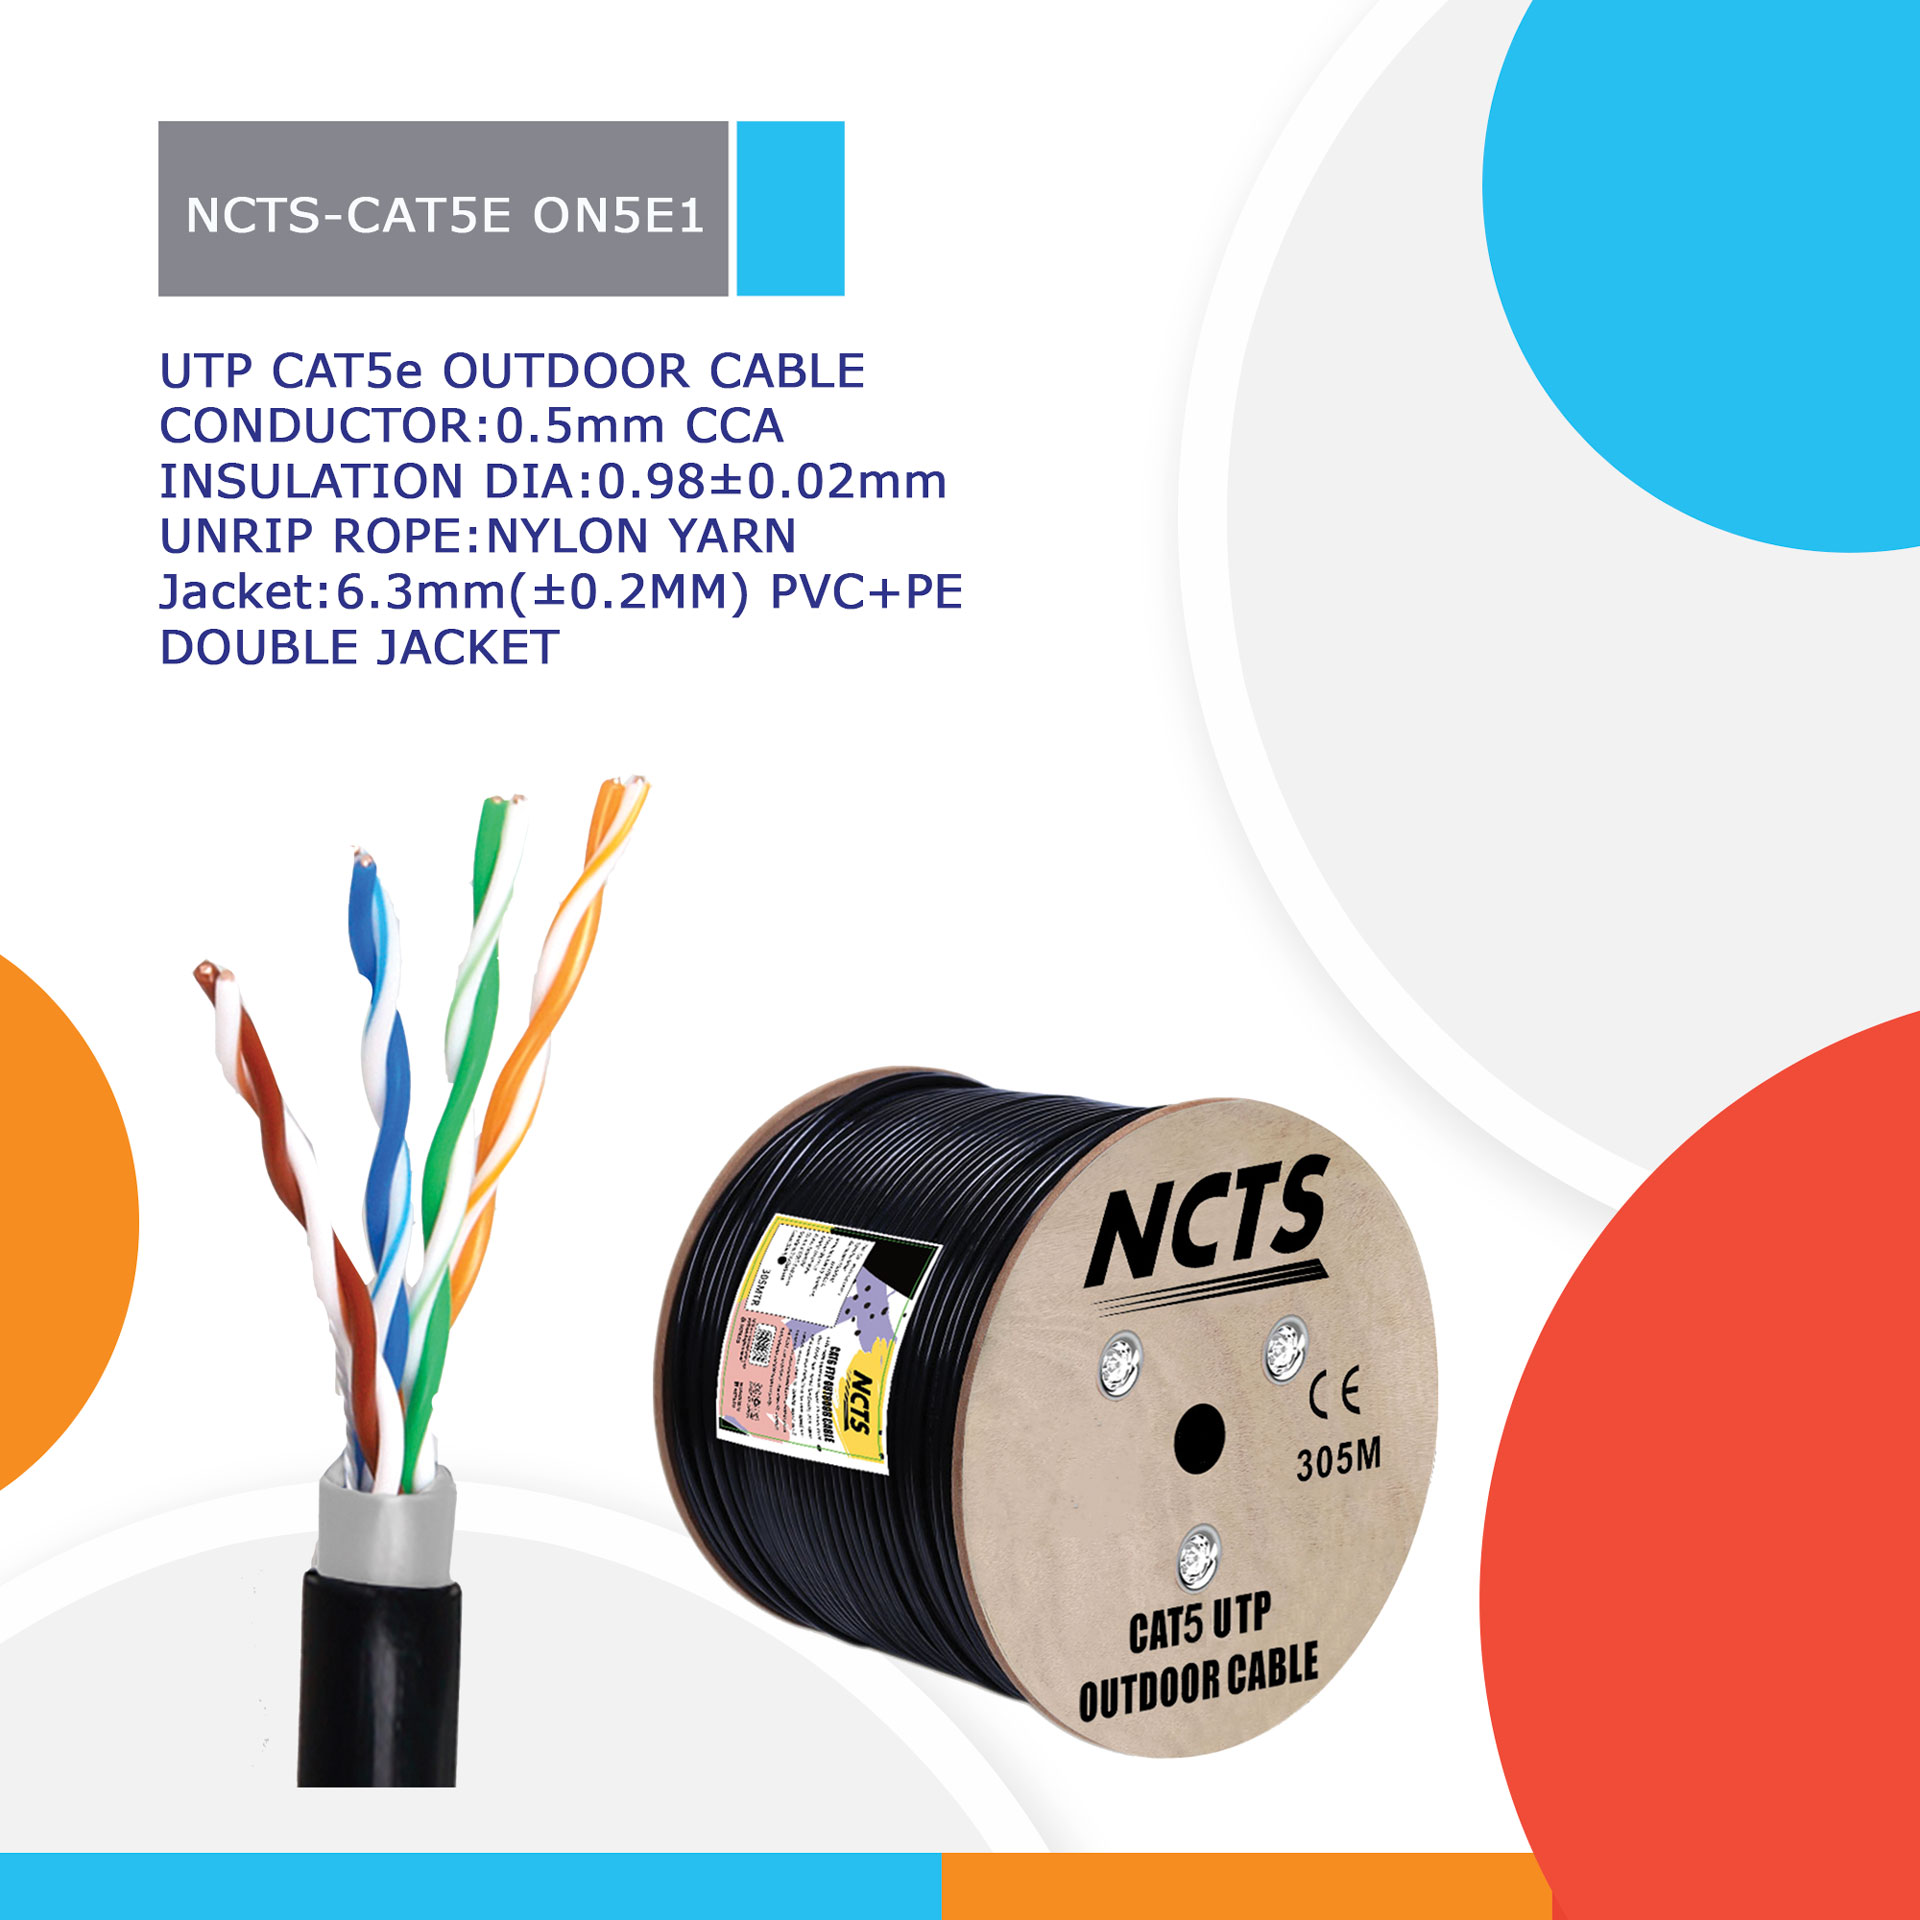 NCTS-CAT5E ON5E1